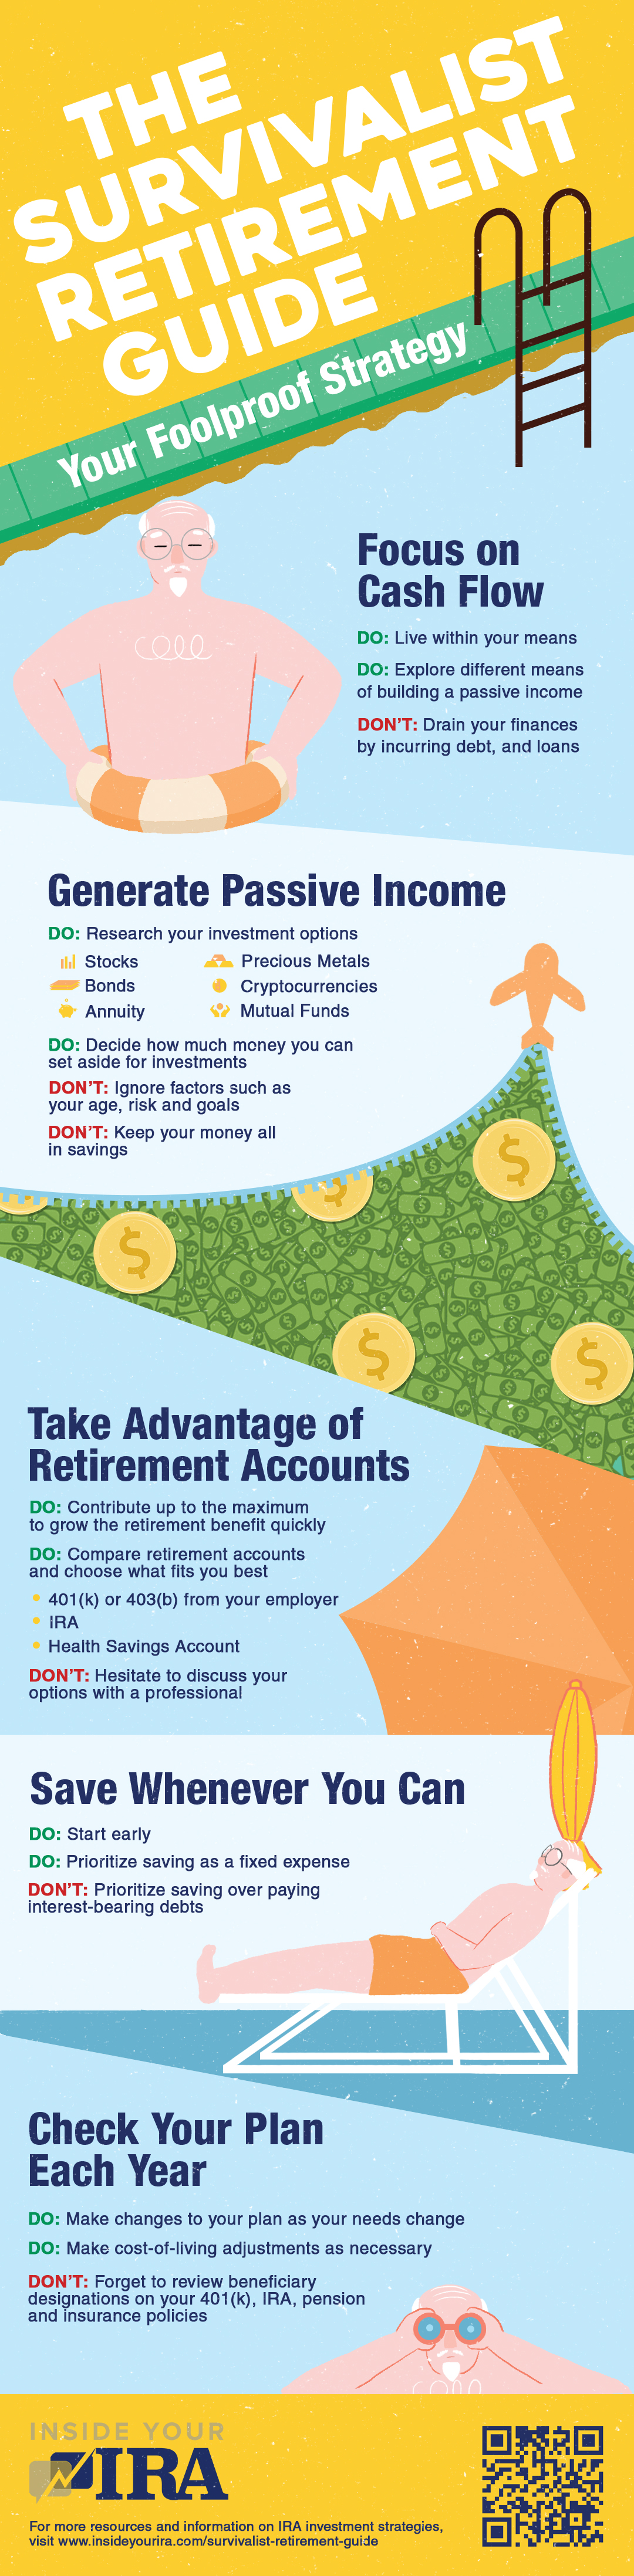 infographic | The Survivalist Retirement Guide